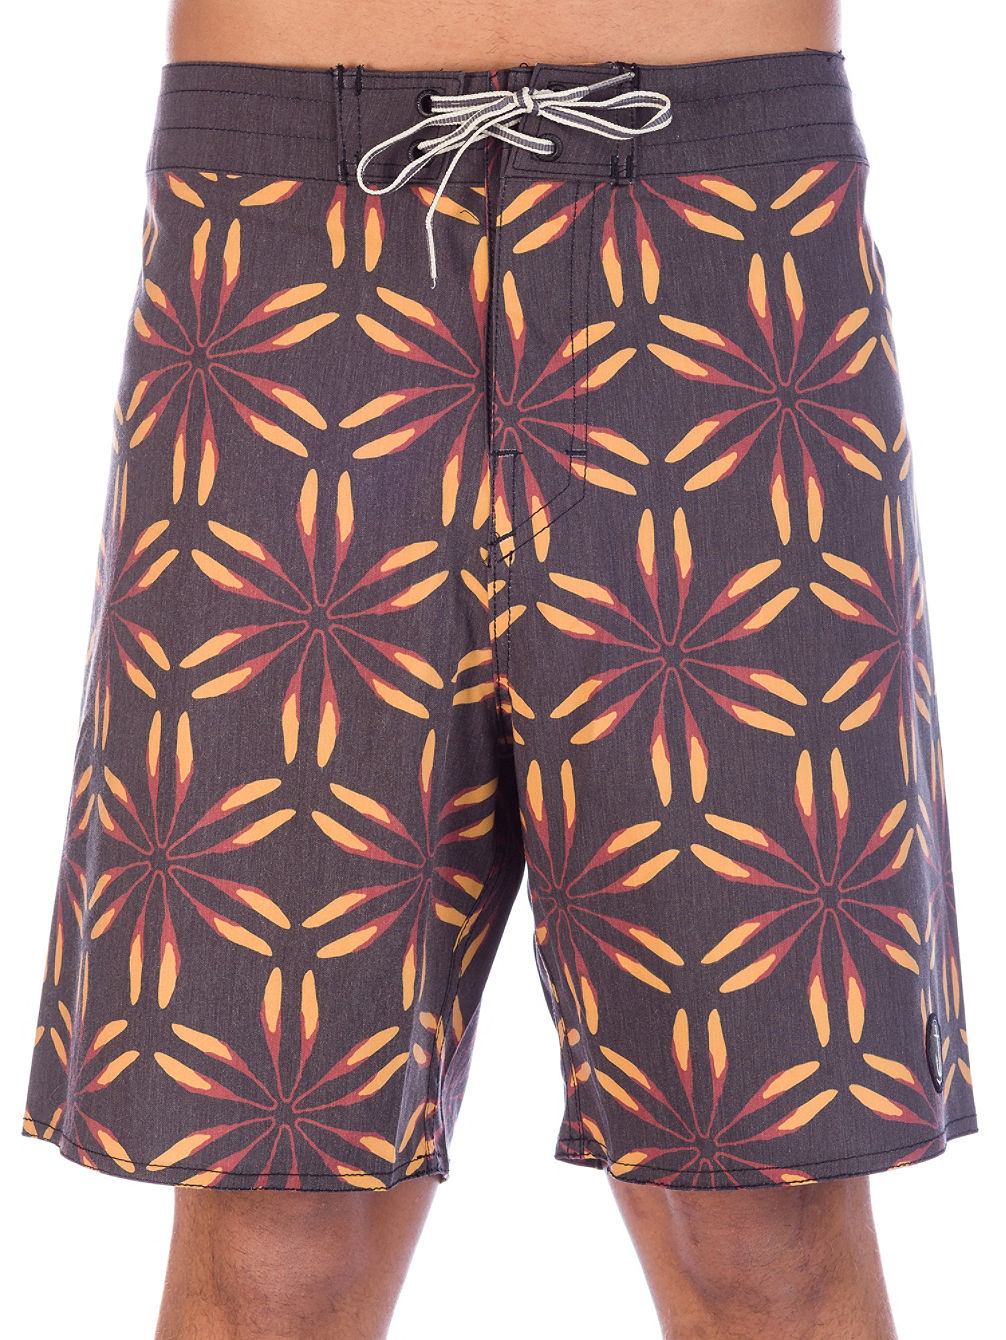 Spindrift Boardshorts